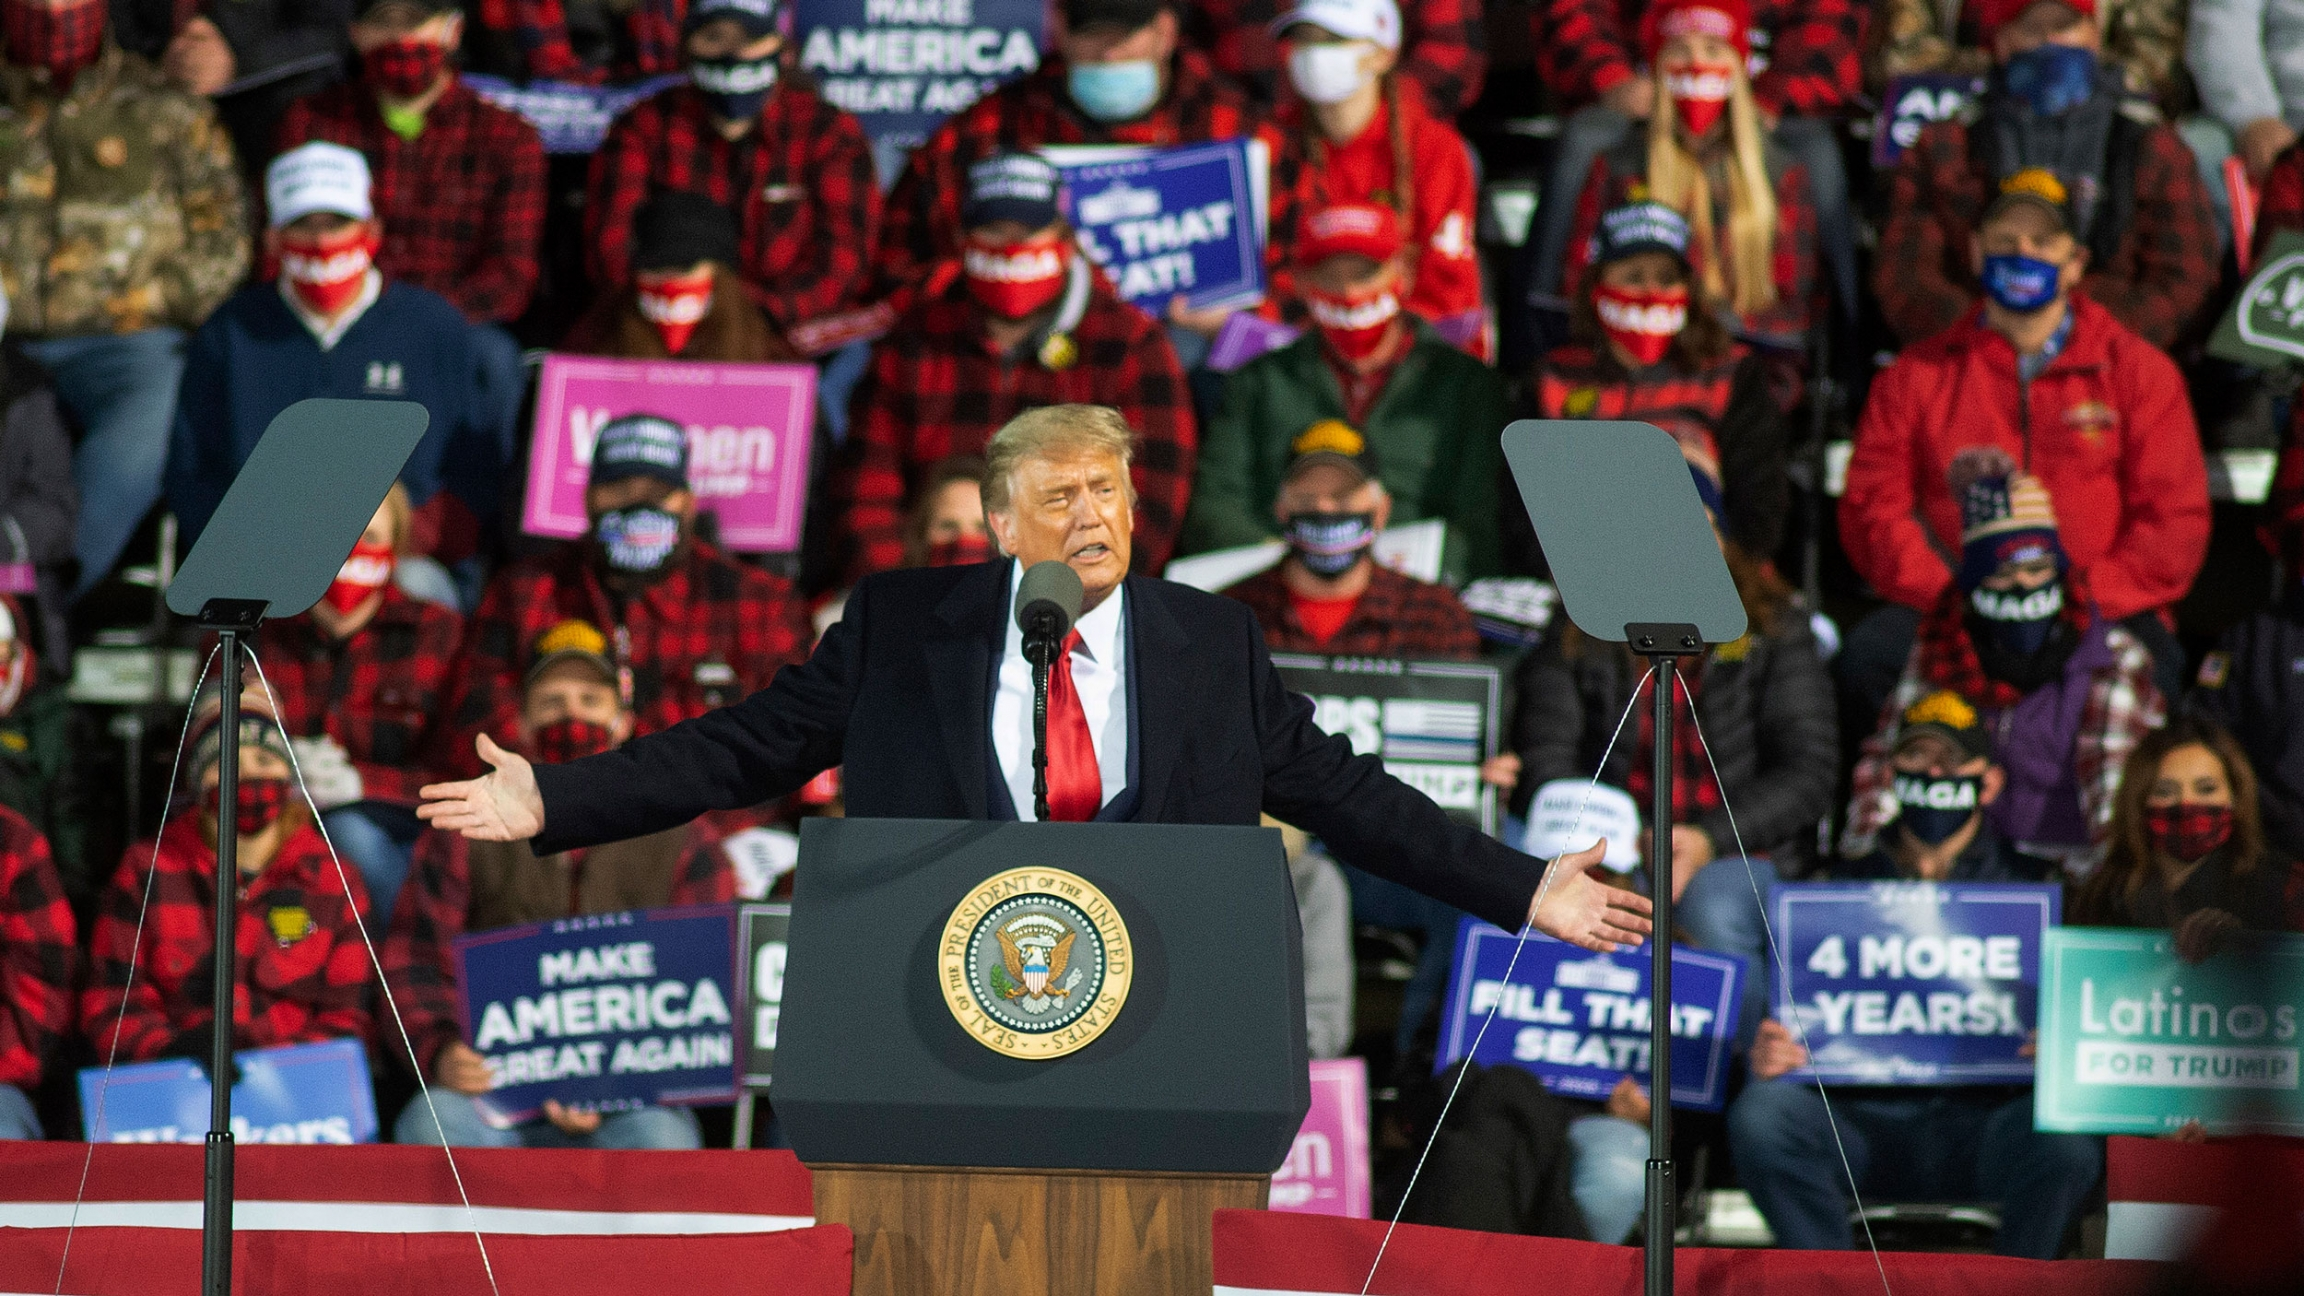 US President Donald Trump is shown with his arms outstretched, speaking at a podium with a crowd of people behind him.